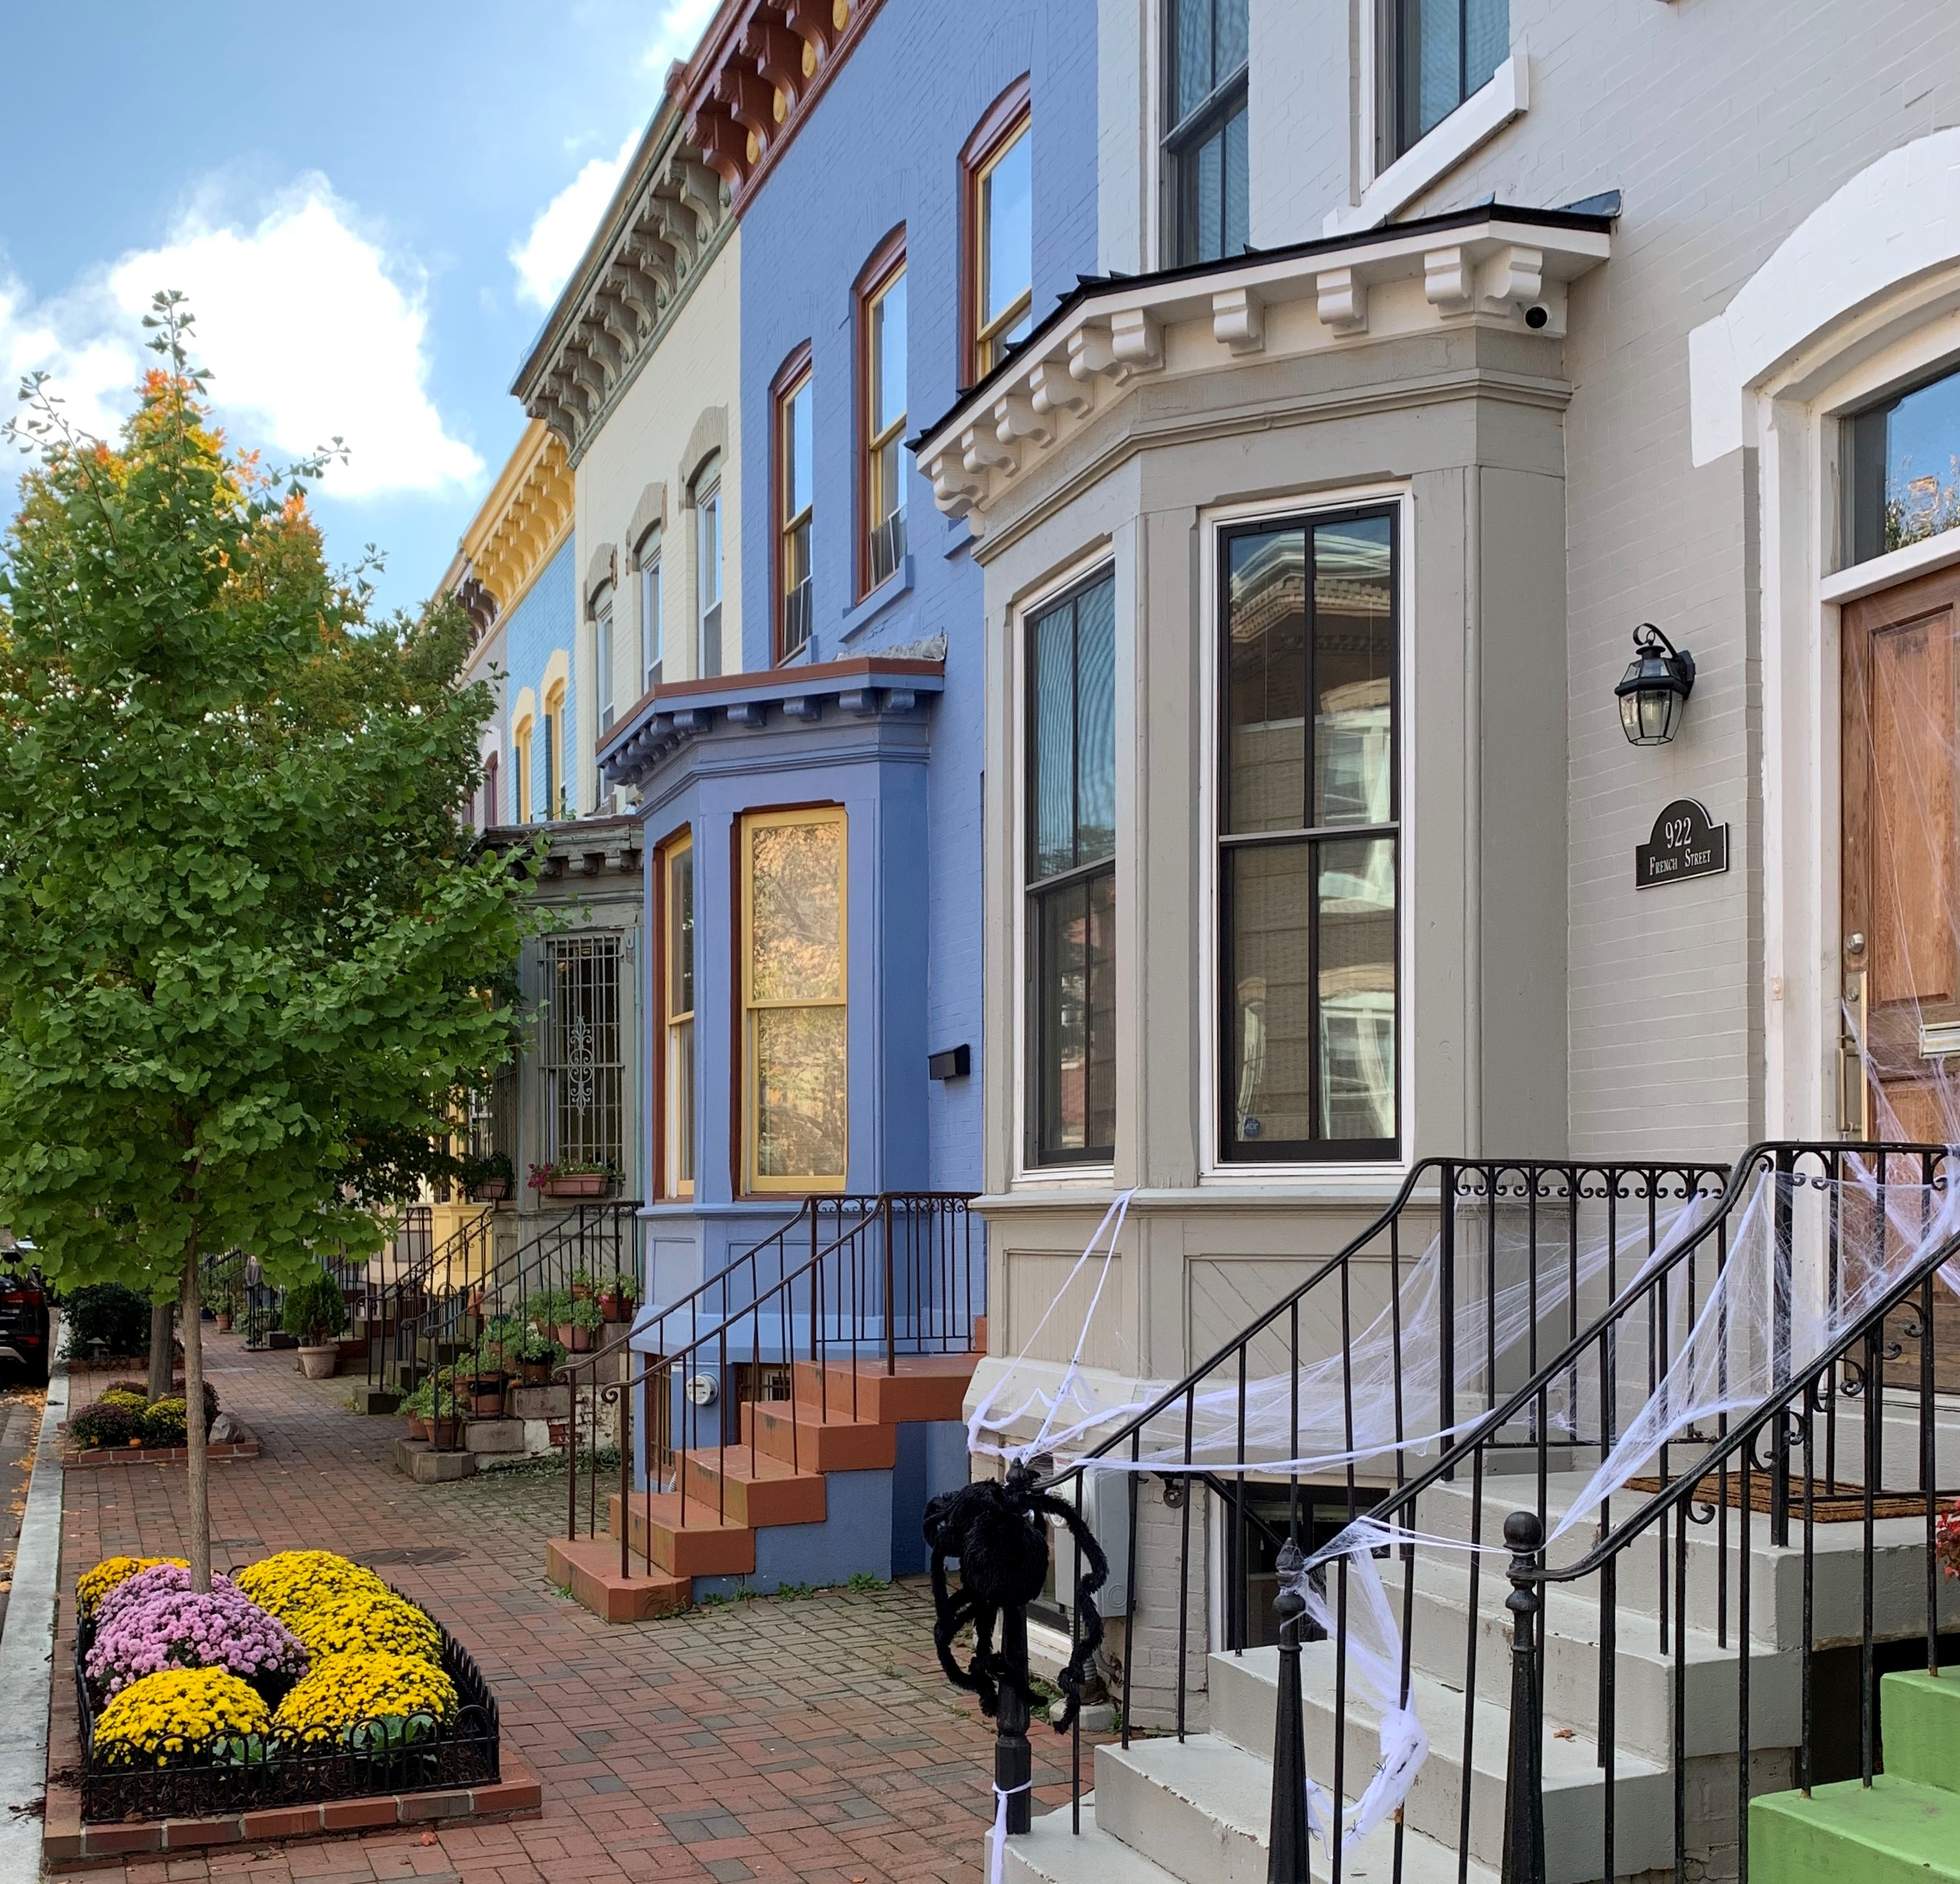 Luxury Real Estate & Homes For Sale in Shaw, Washington, DC. French Street NW. Artyom Shmatko Luxury Real Estate Agent